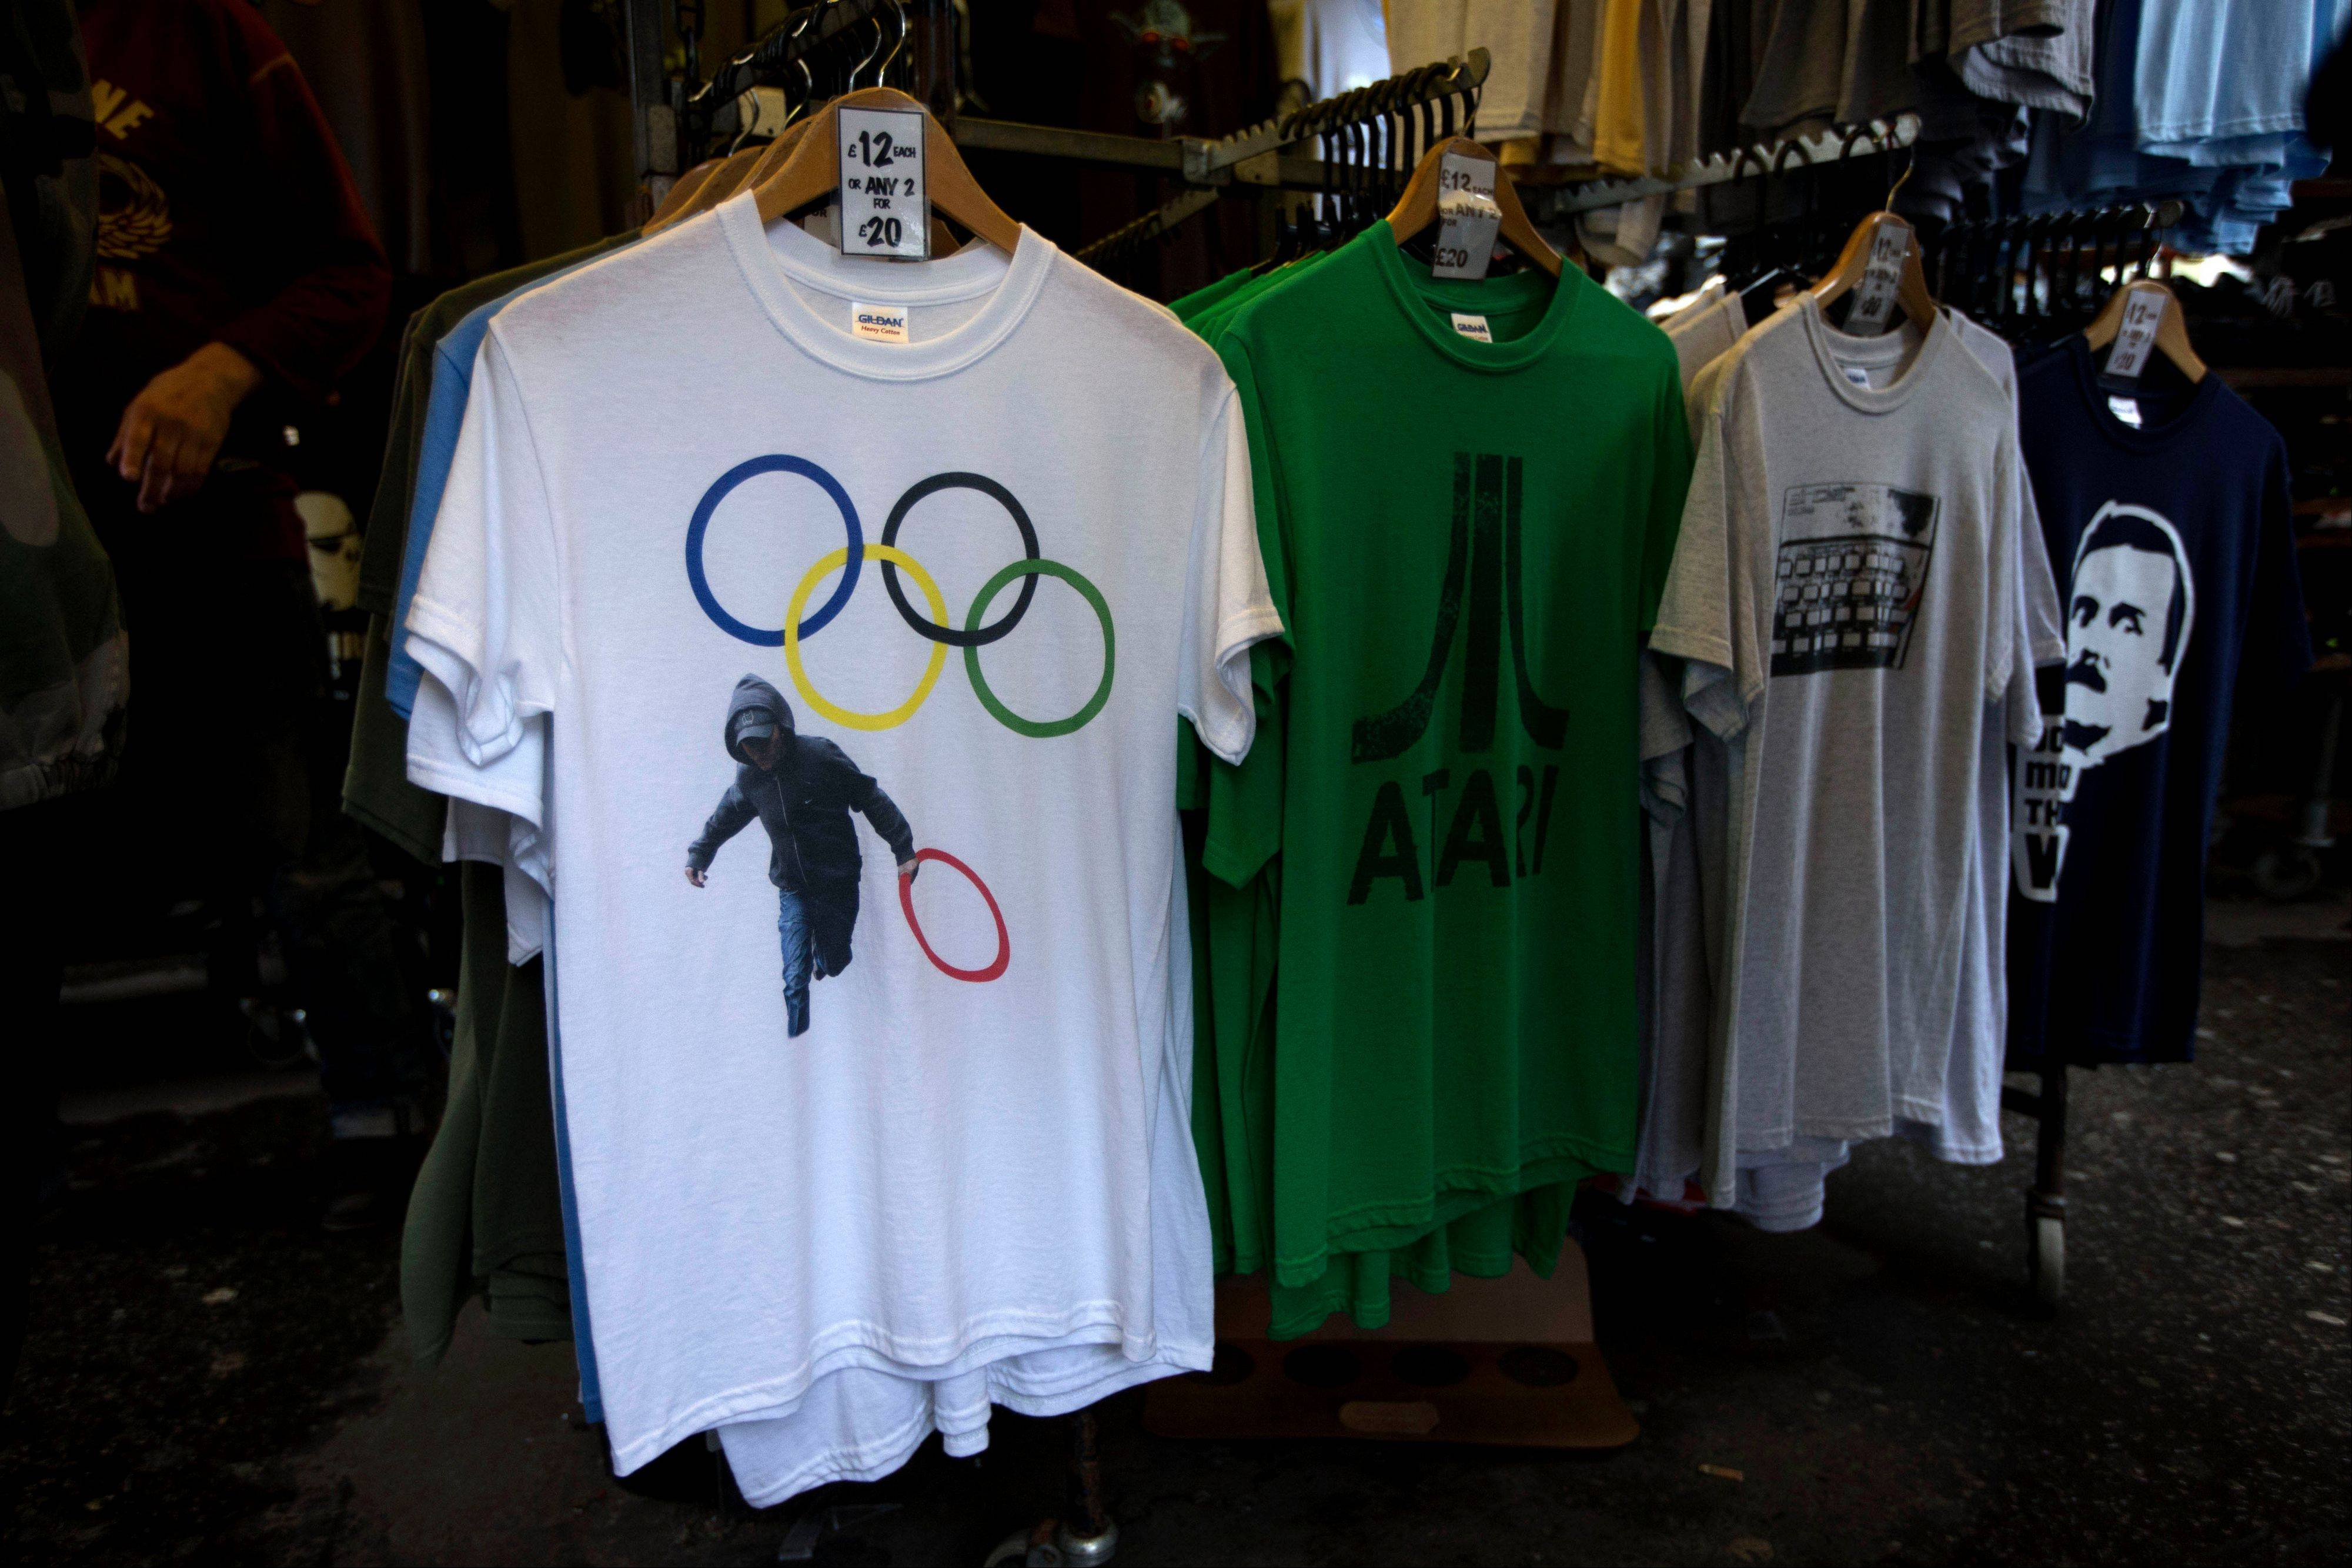 In this photo taken Monday, July 16, 2012, a t-shirt depicting a rioter holding an Olympic ring is displayed on sale in a London market. The guardians of the games are vigilant about protecting the integrity - and the commercial clout - of the Olympic brand. But even they can�t stop the irreverent spirit of artists and craftspeople, who have responded to the games with a cheeky mix of celebration, skepticism and satire.